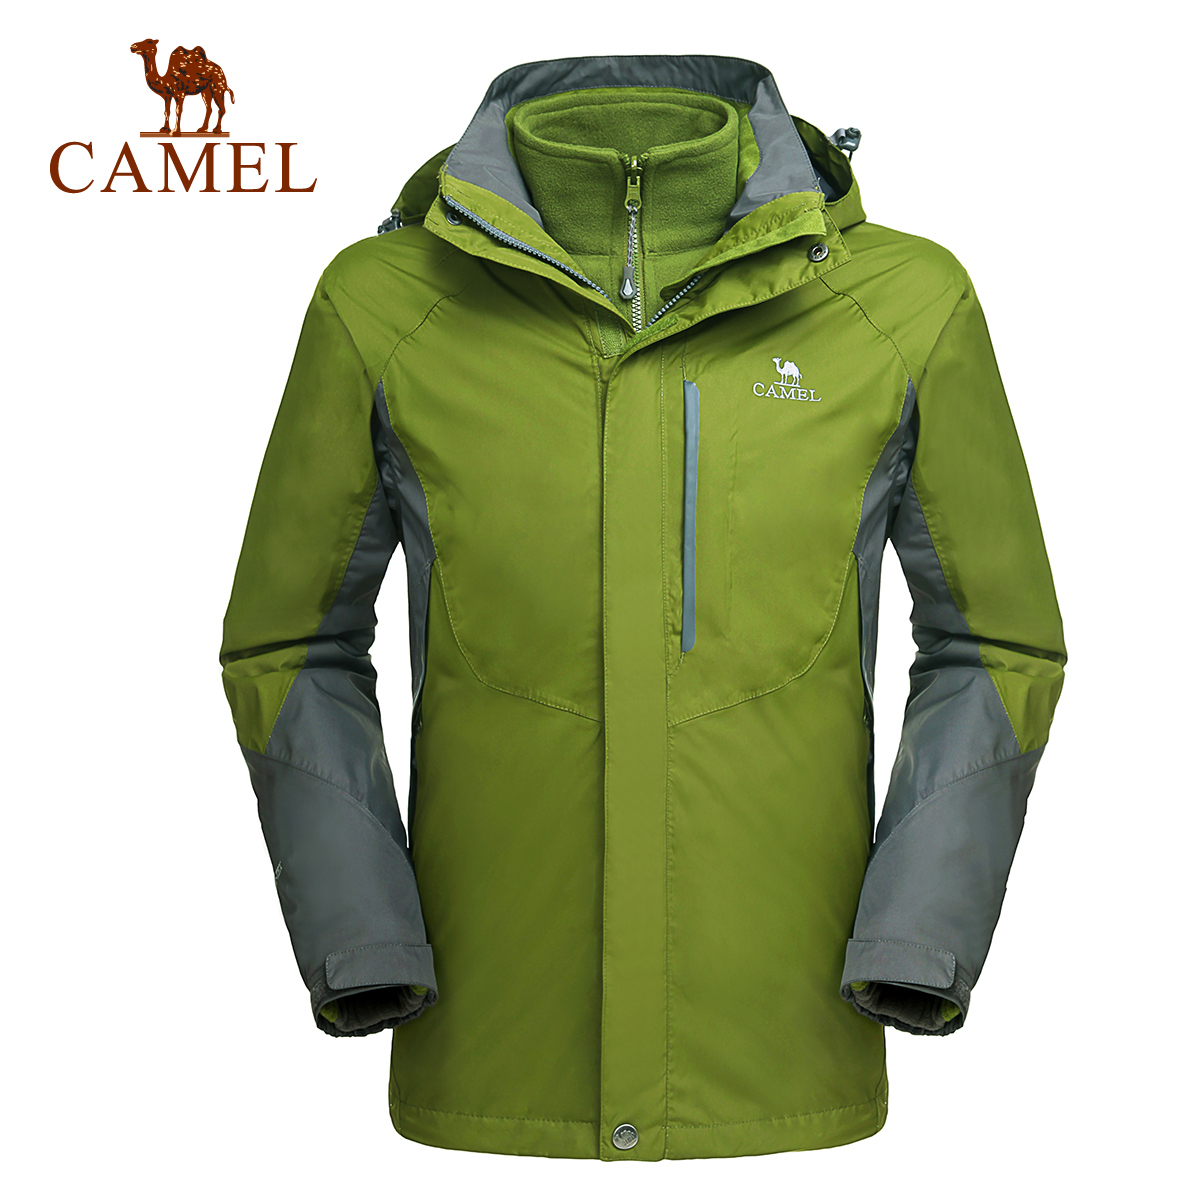 Camel camel outdoor jackets mens jackets triple warm waterproof windproof